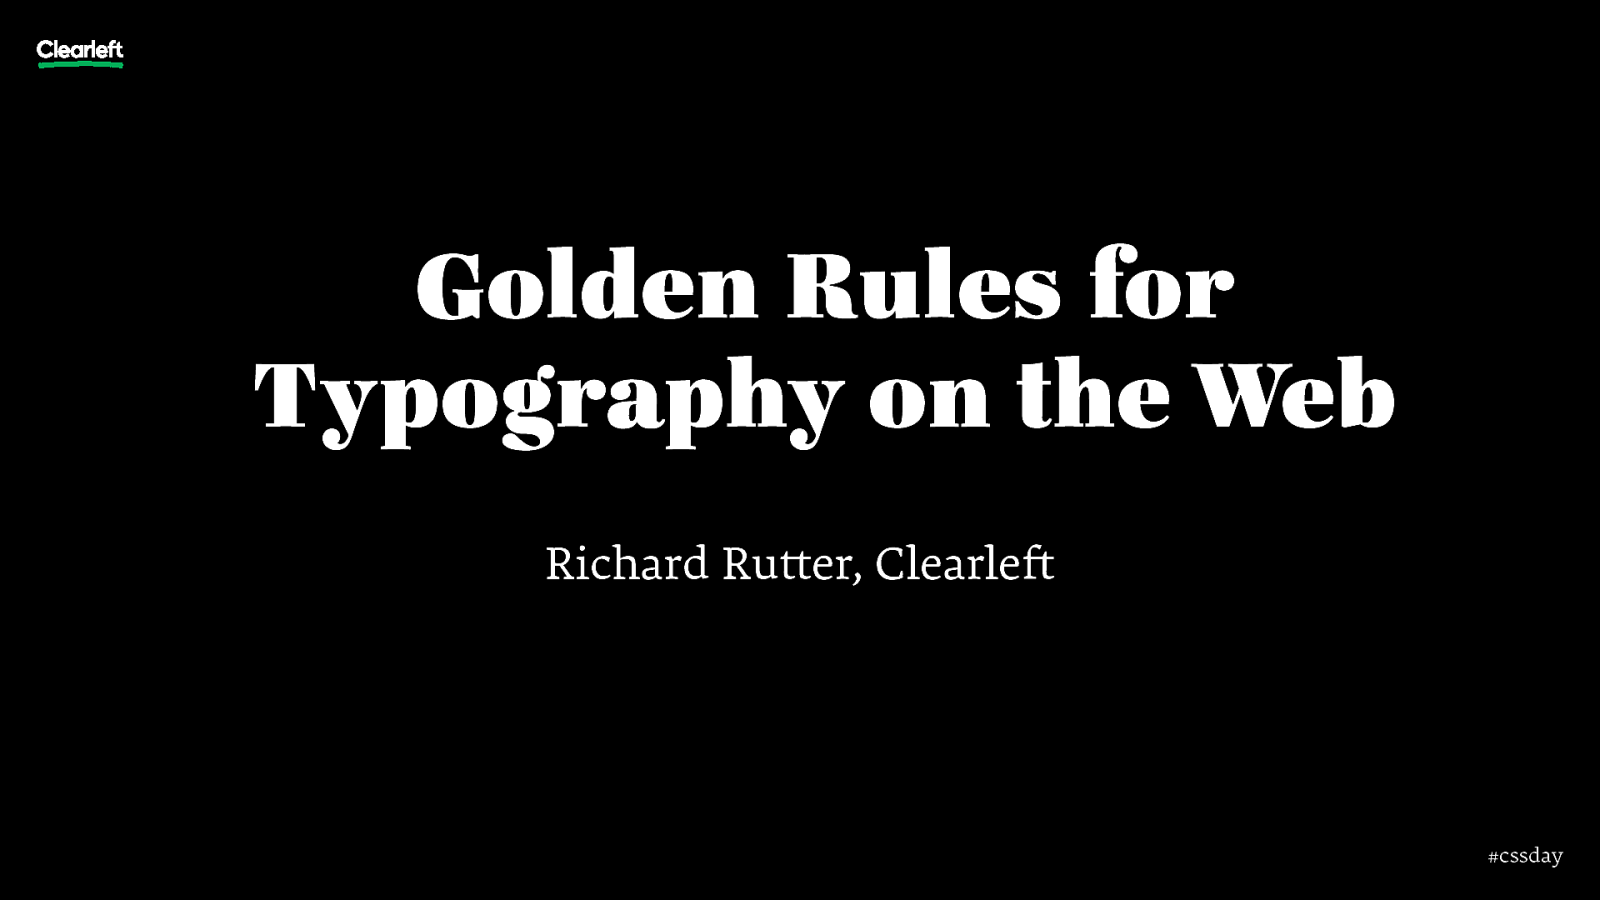 Golden Rules of Typography on the Web by Richard Rutter